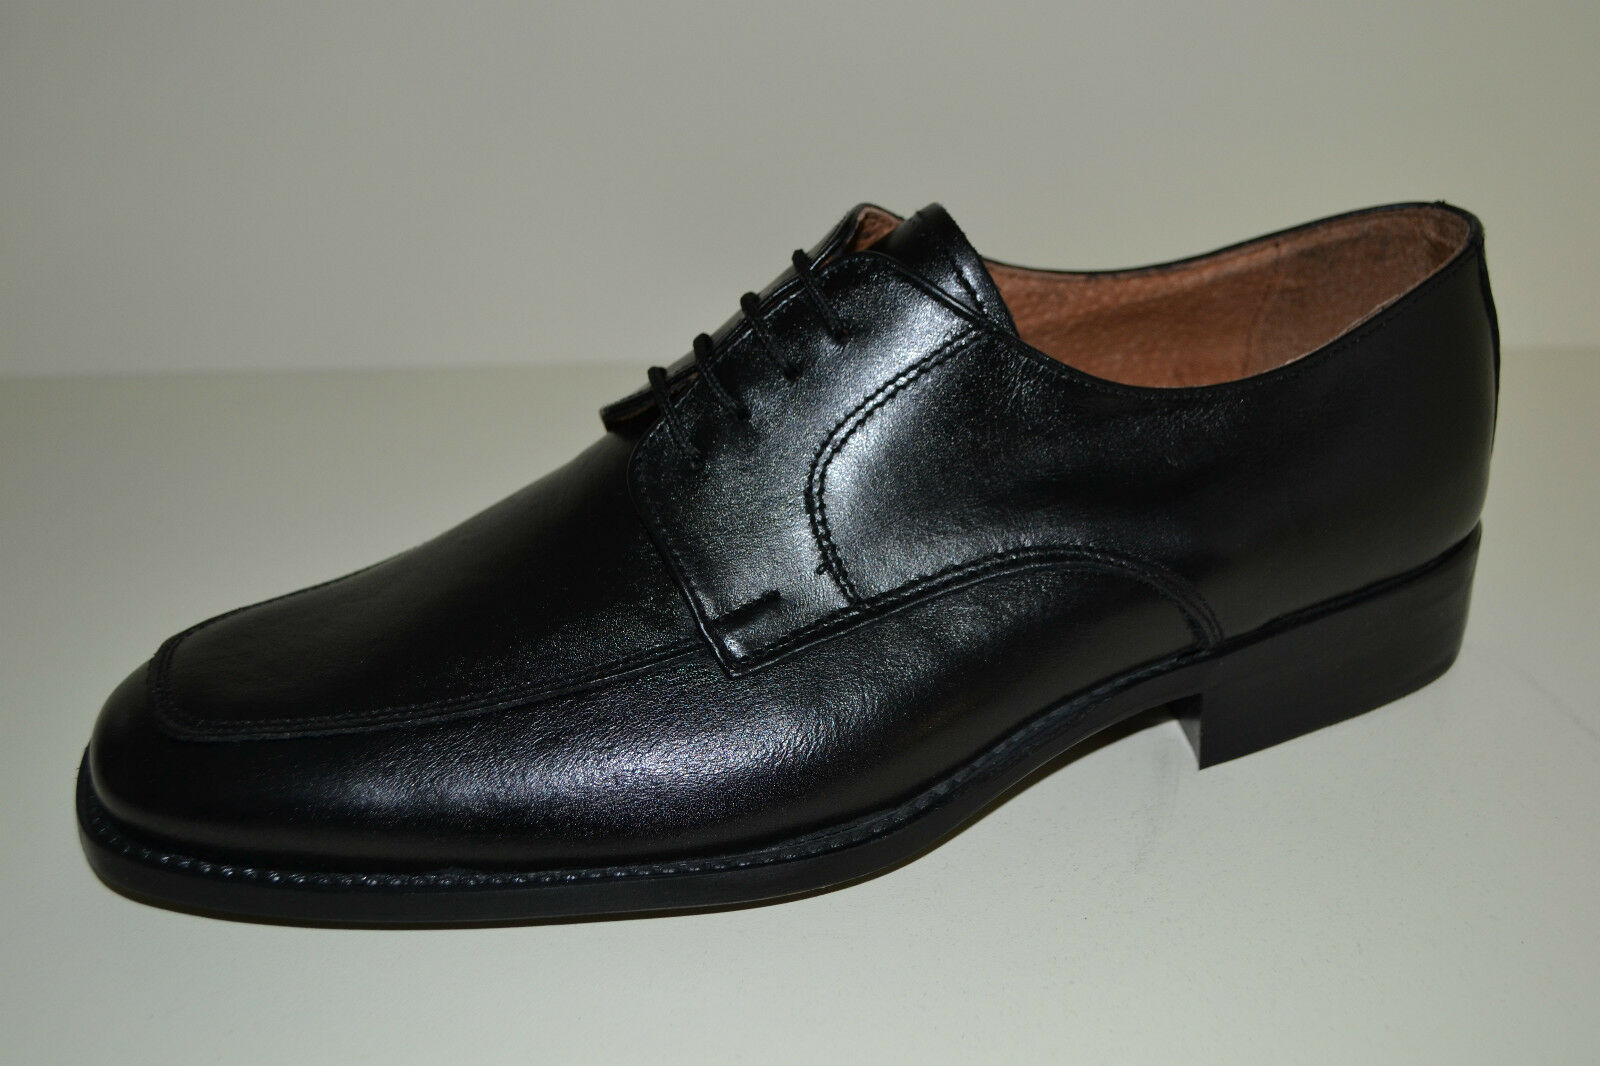 shoes CALZATURE ELEGANTI CERIMONIA PELLE men ITALY N.  39 40 41 42 43 44 45 46